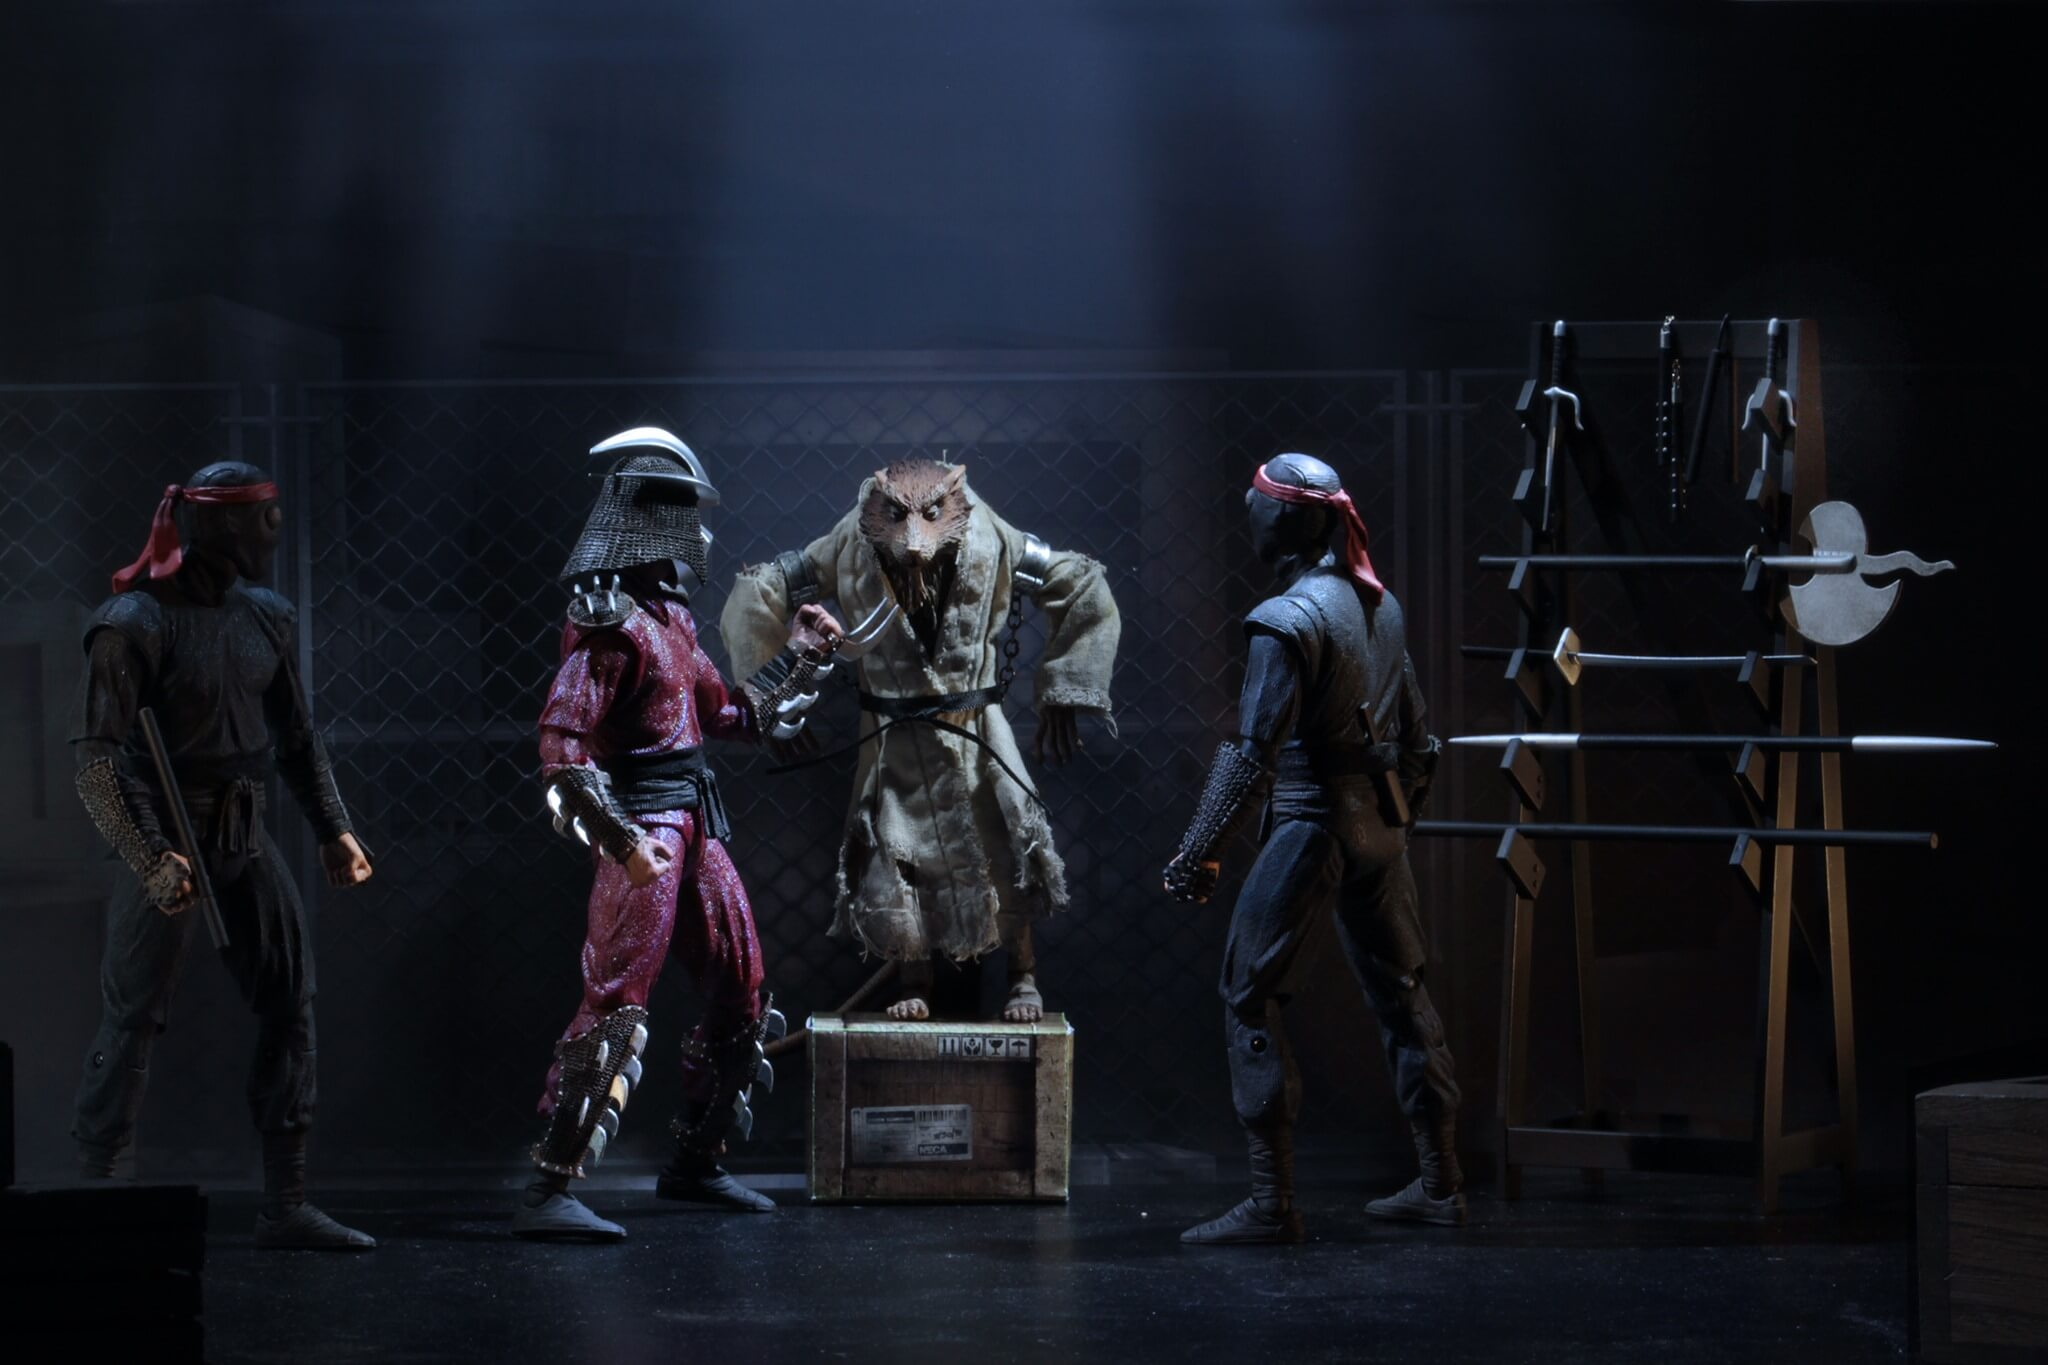 NECA TMNT 1990 The Capture of Splinter Action Figure SDCC 2019